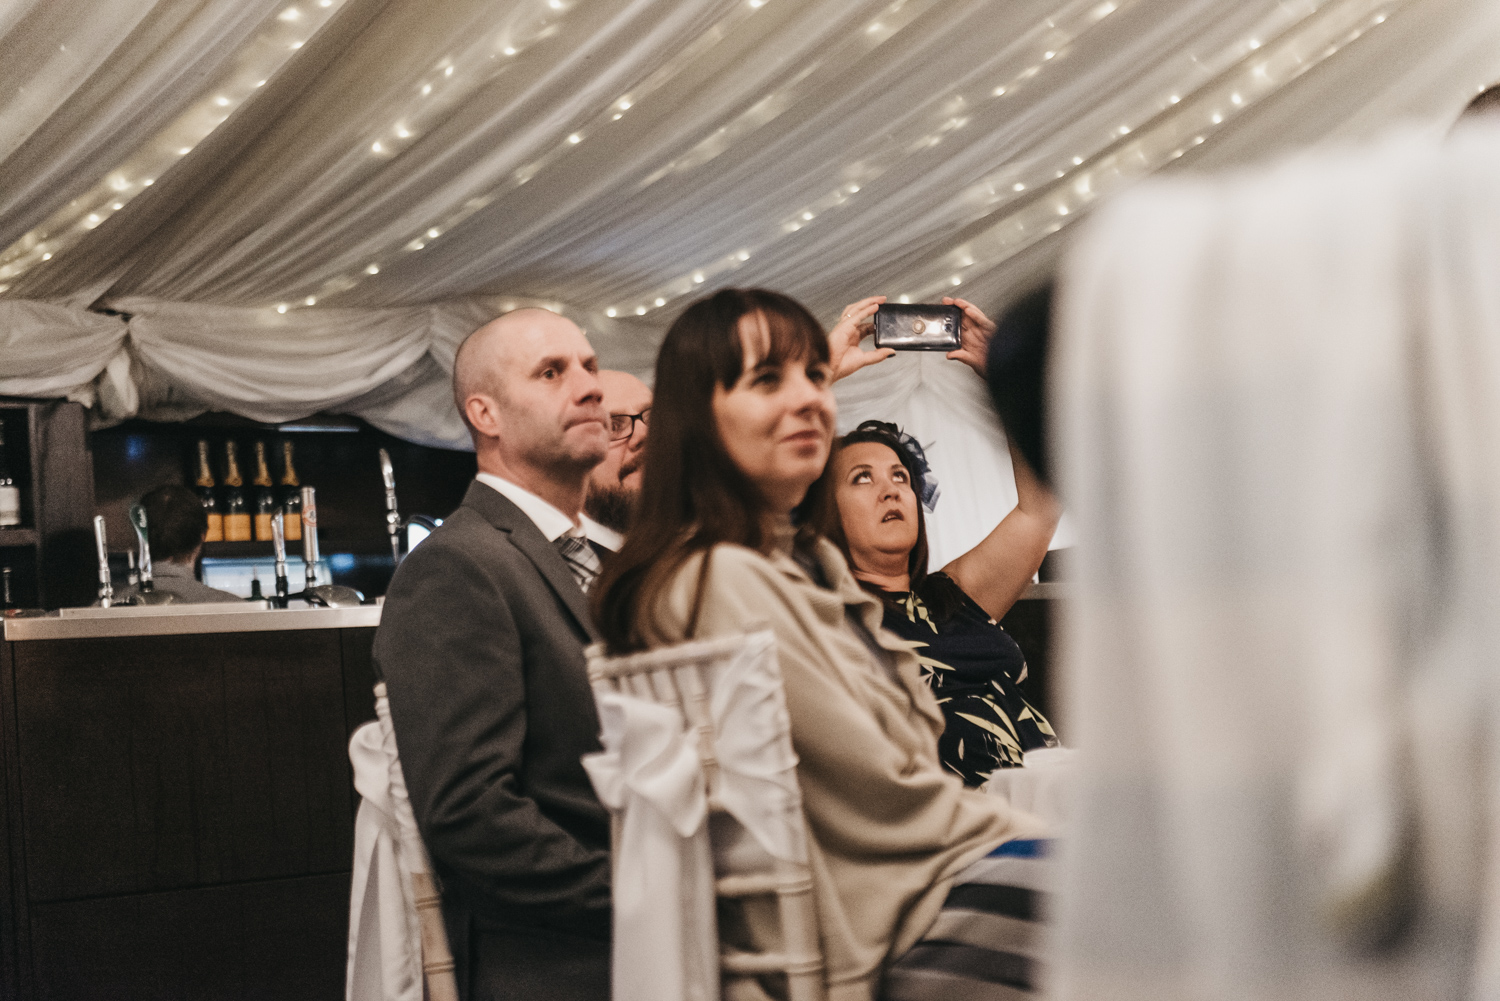 Guests taking photos